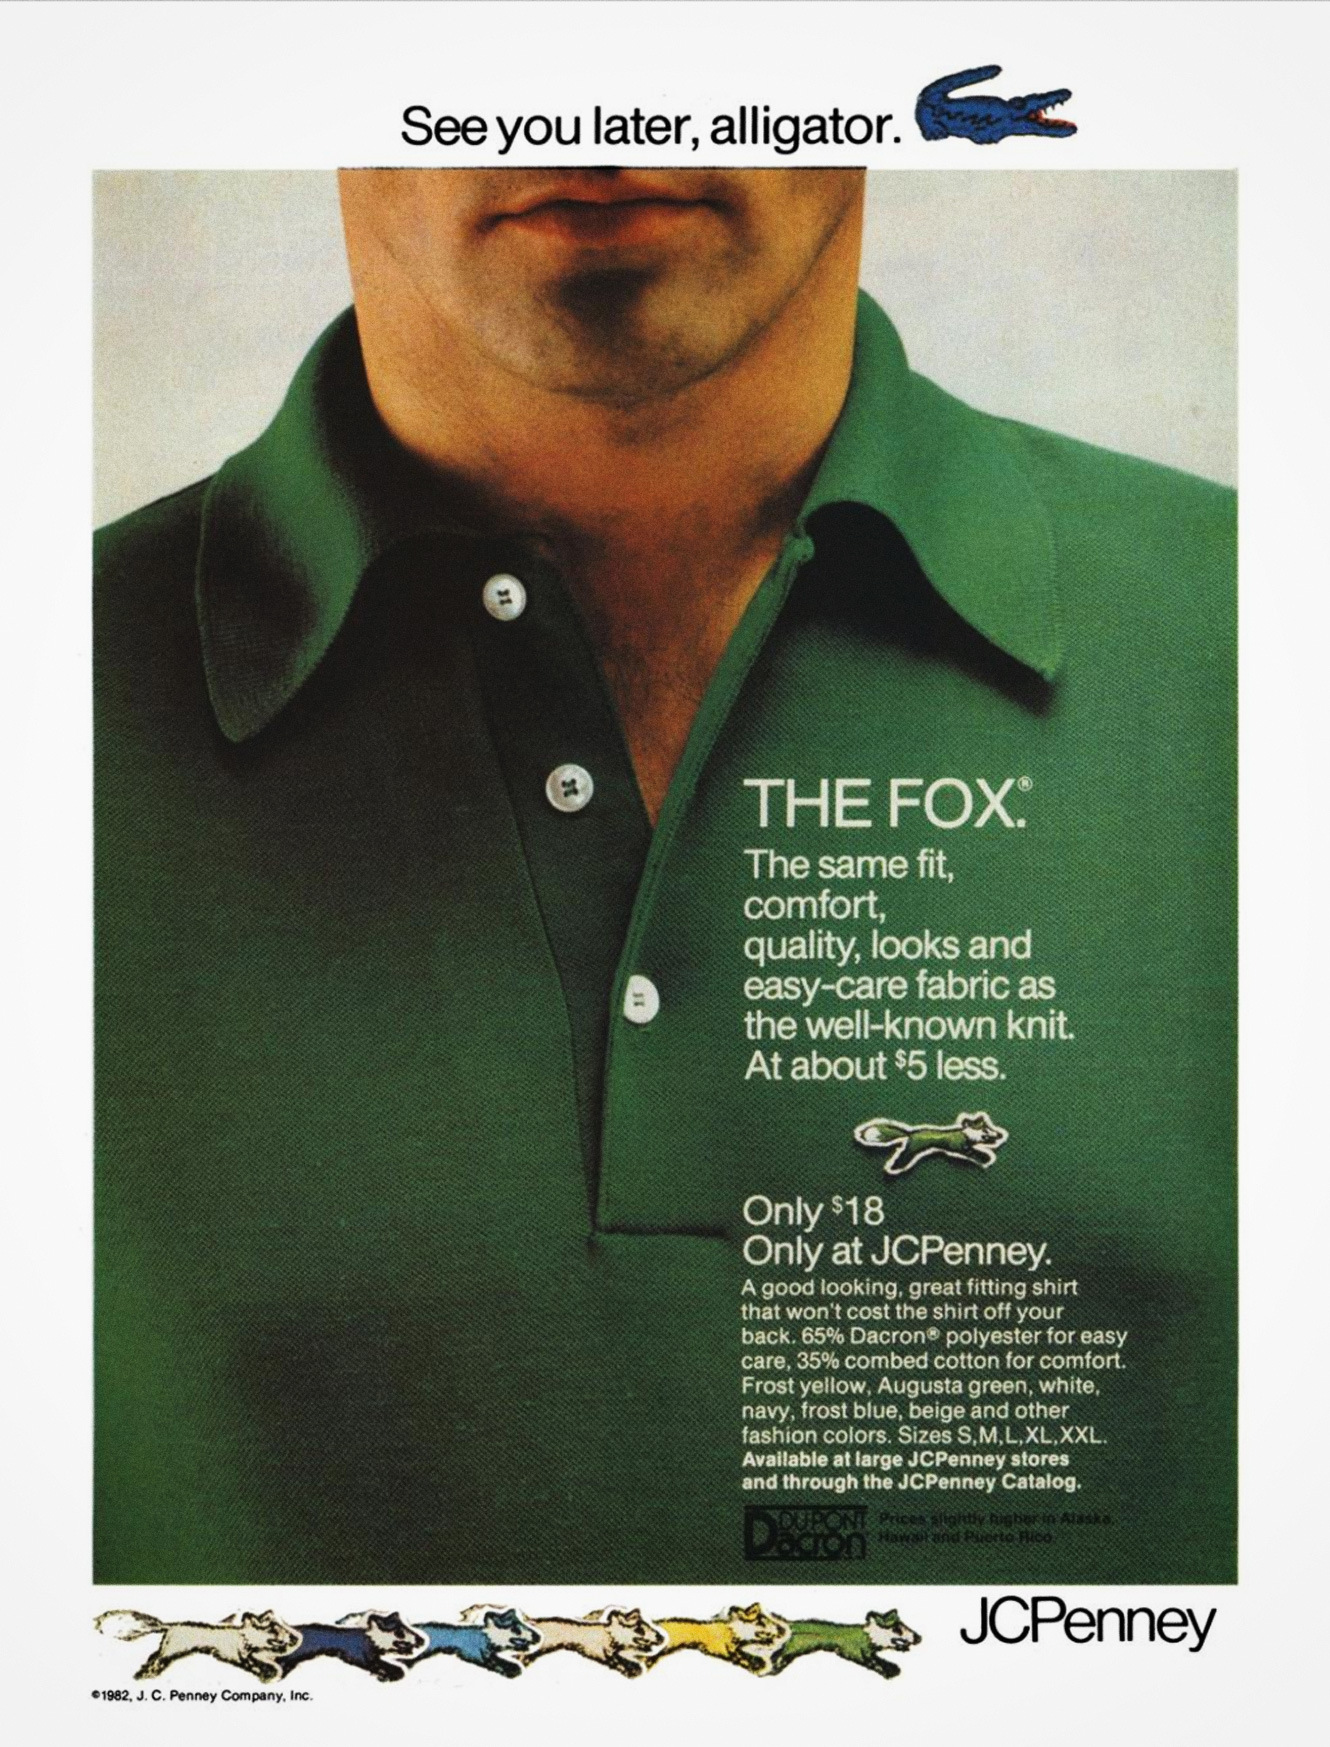 The Fox Shirt by JCPenney 1982